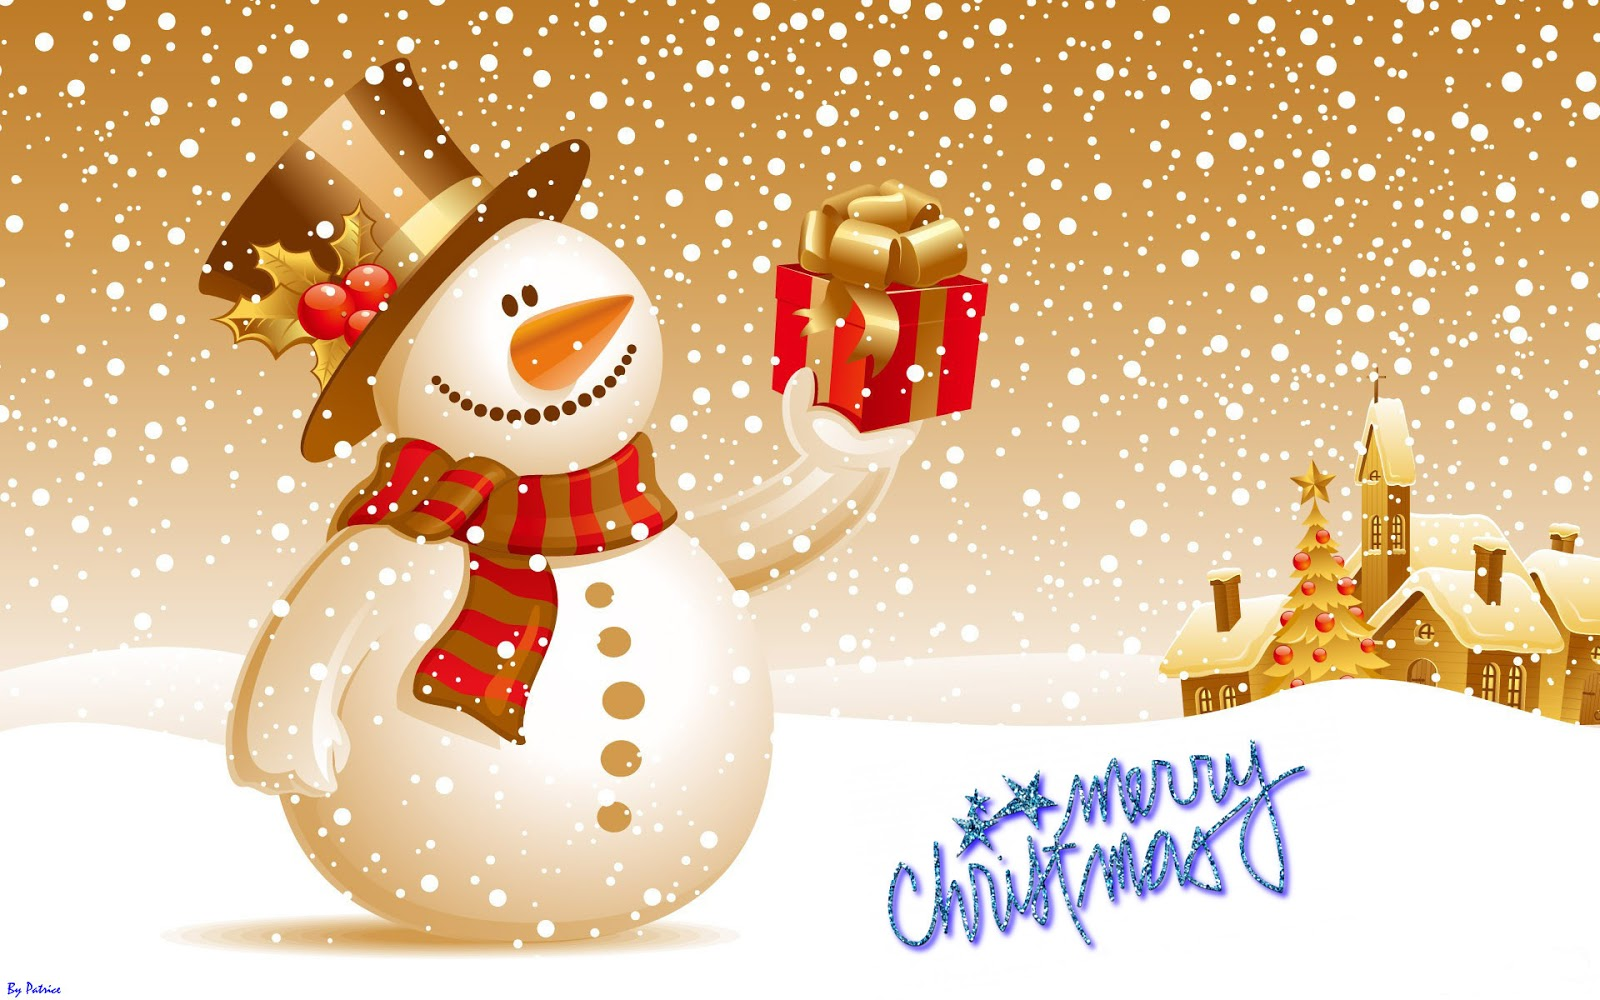 Muslims and merry christmas wishes discover islam kuwait portal muslims and merry christmas wishes m4hsunfo